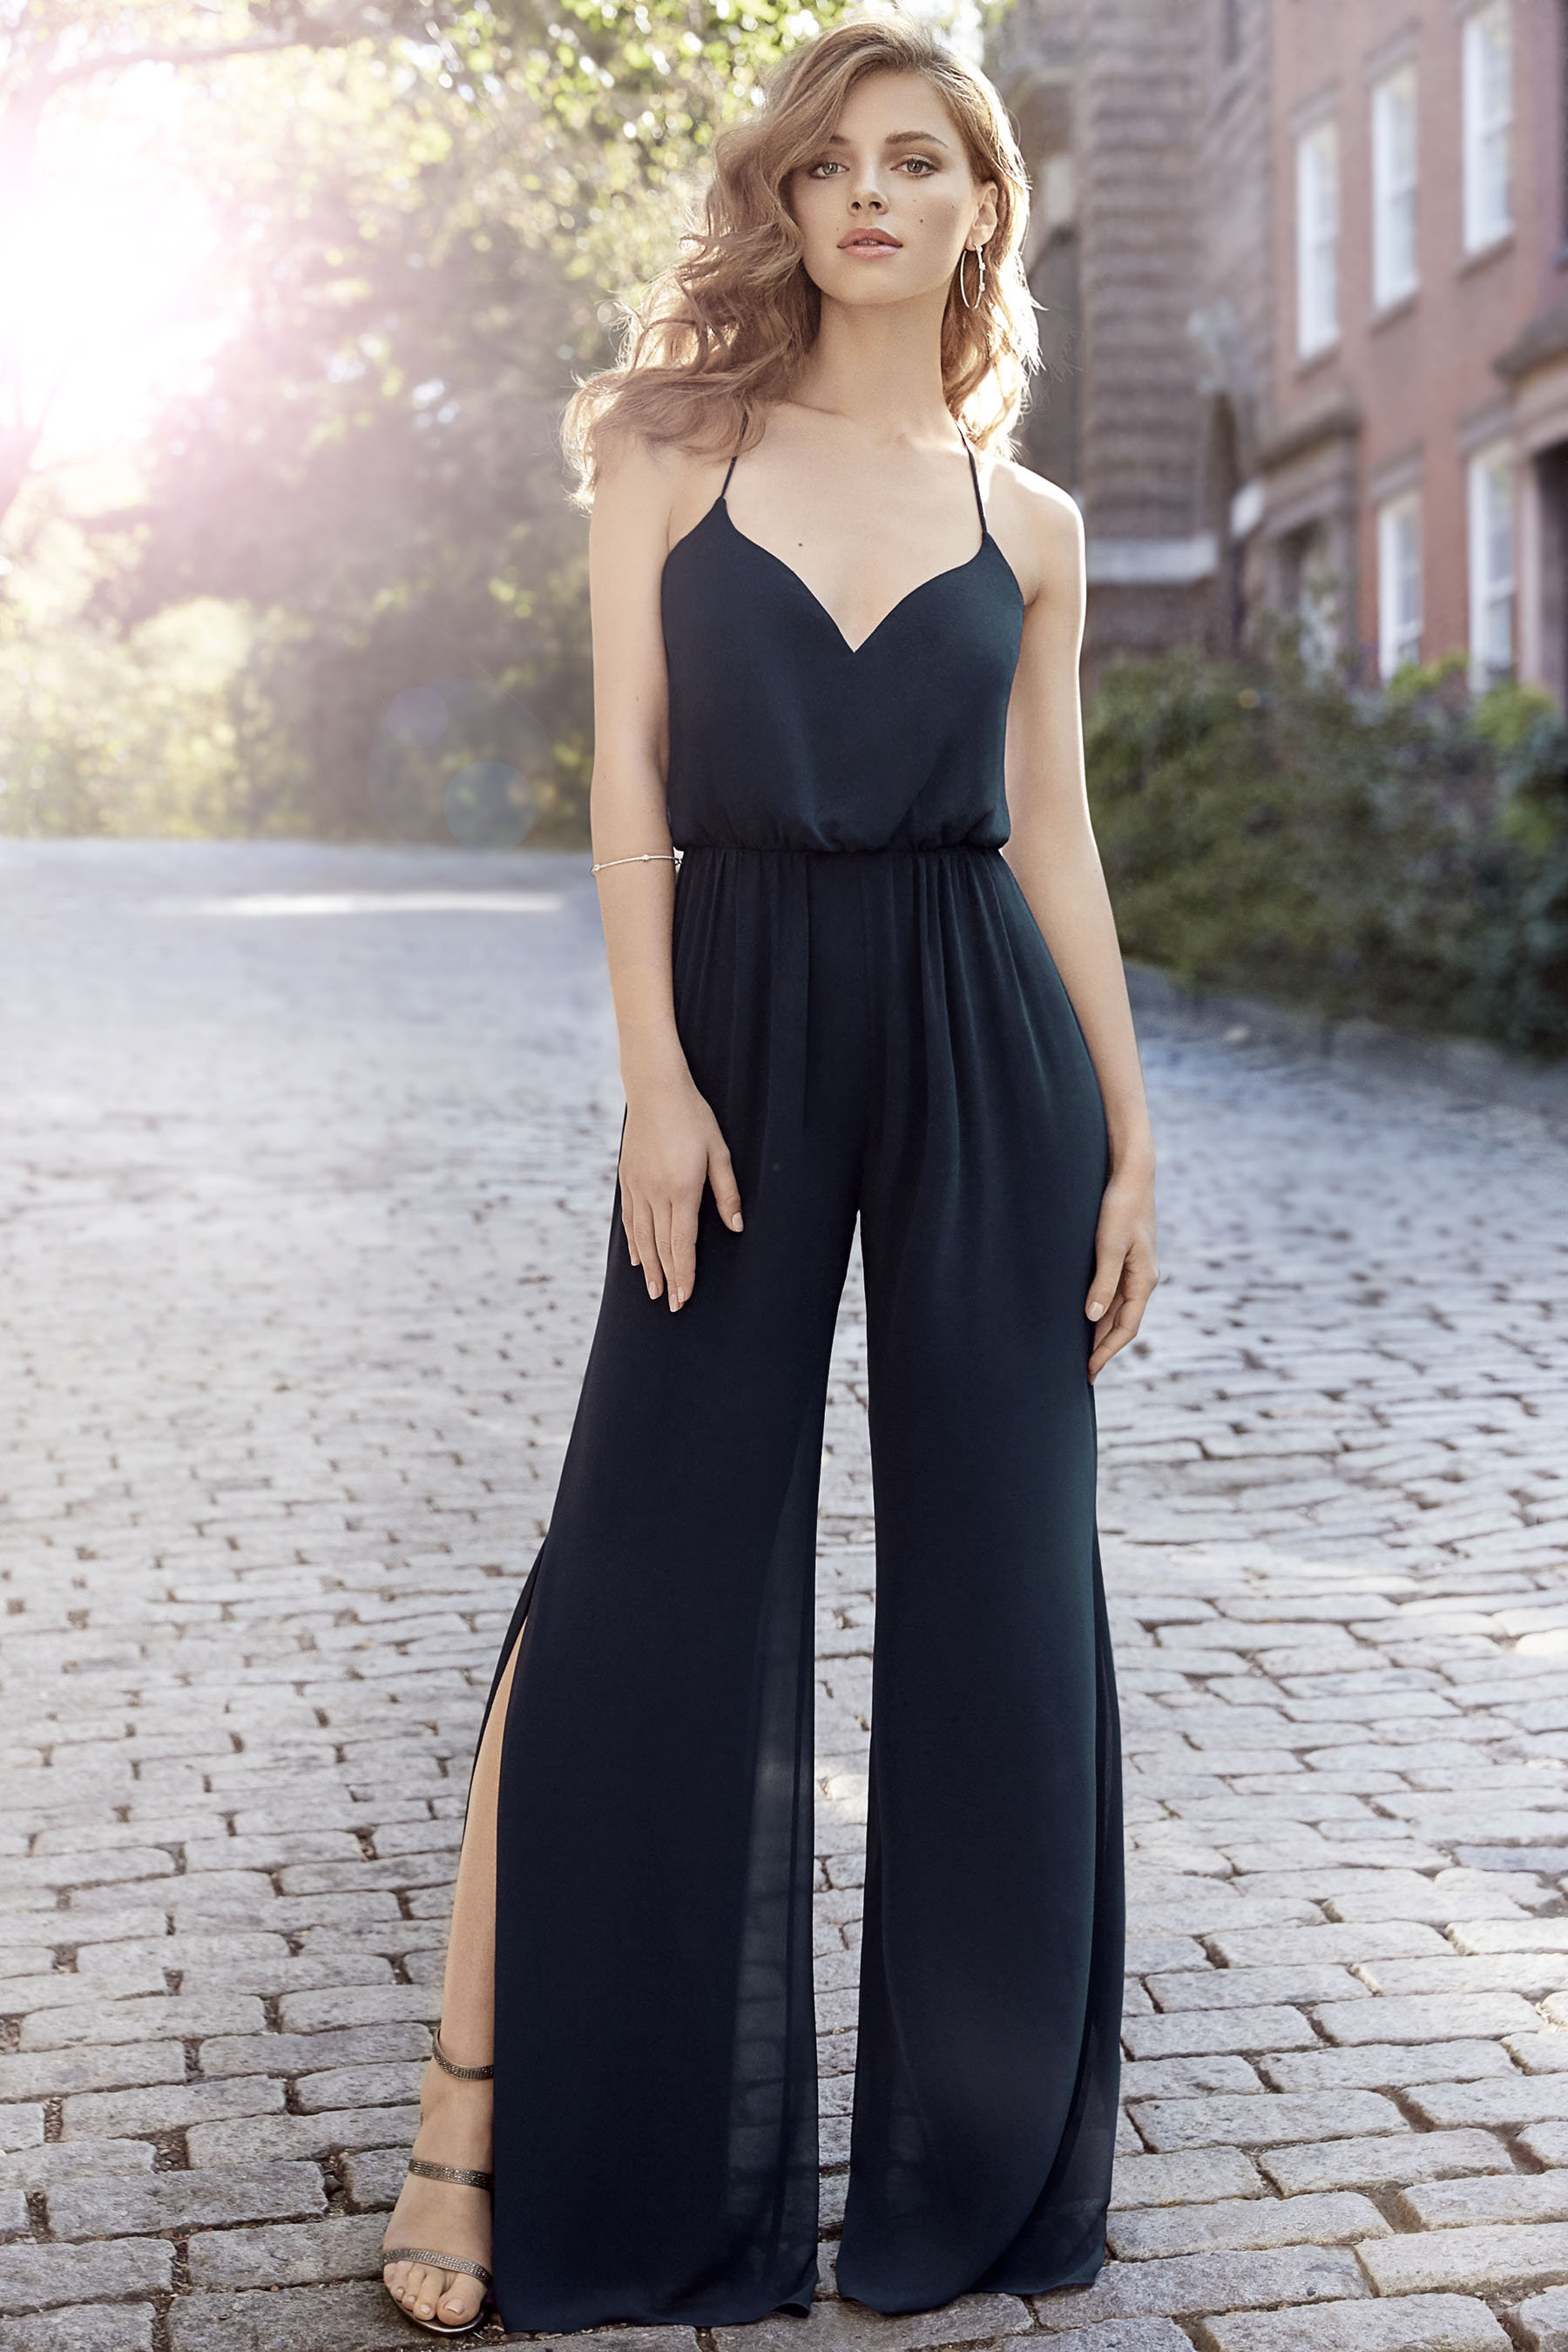 Hayley Paige Bridesmaid Jumpsuit for an oh-so-chic spin on jumpsuits